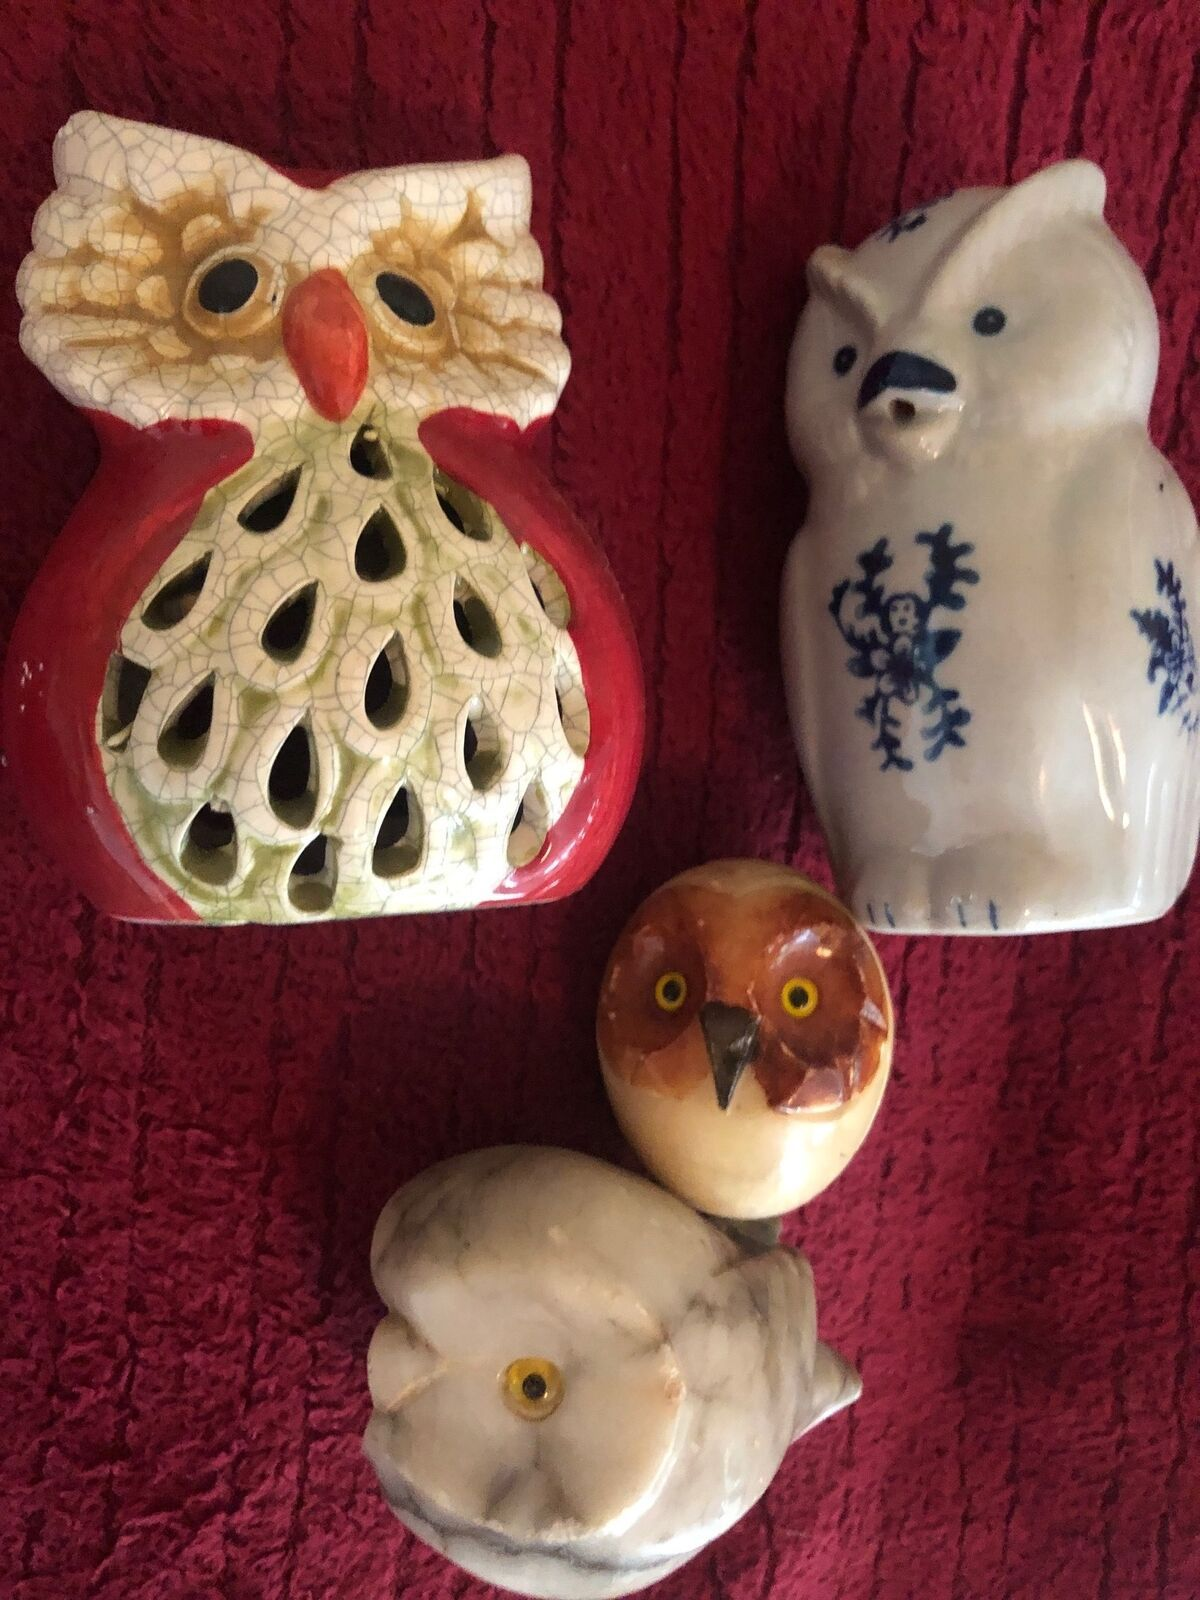 4 Owl Collectible Figurines 2 Marble Like or Alabaster Tea Light Holder Creamer